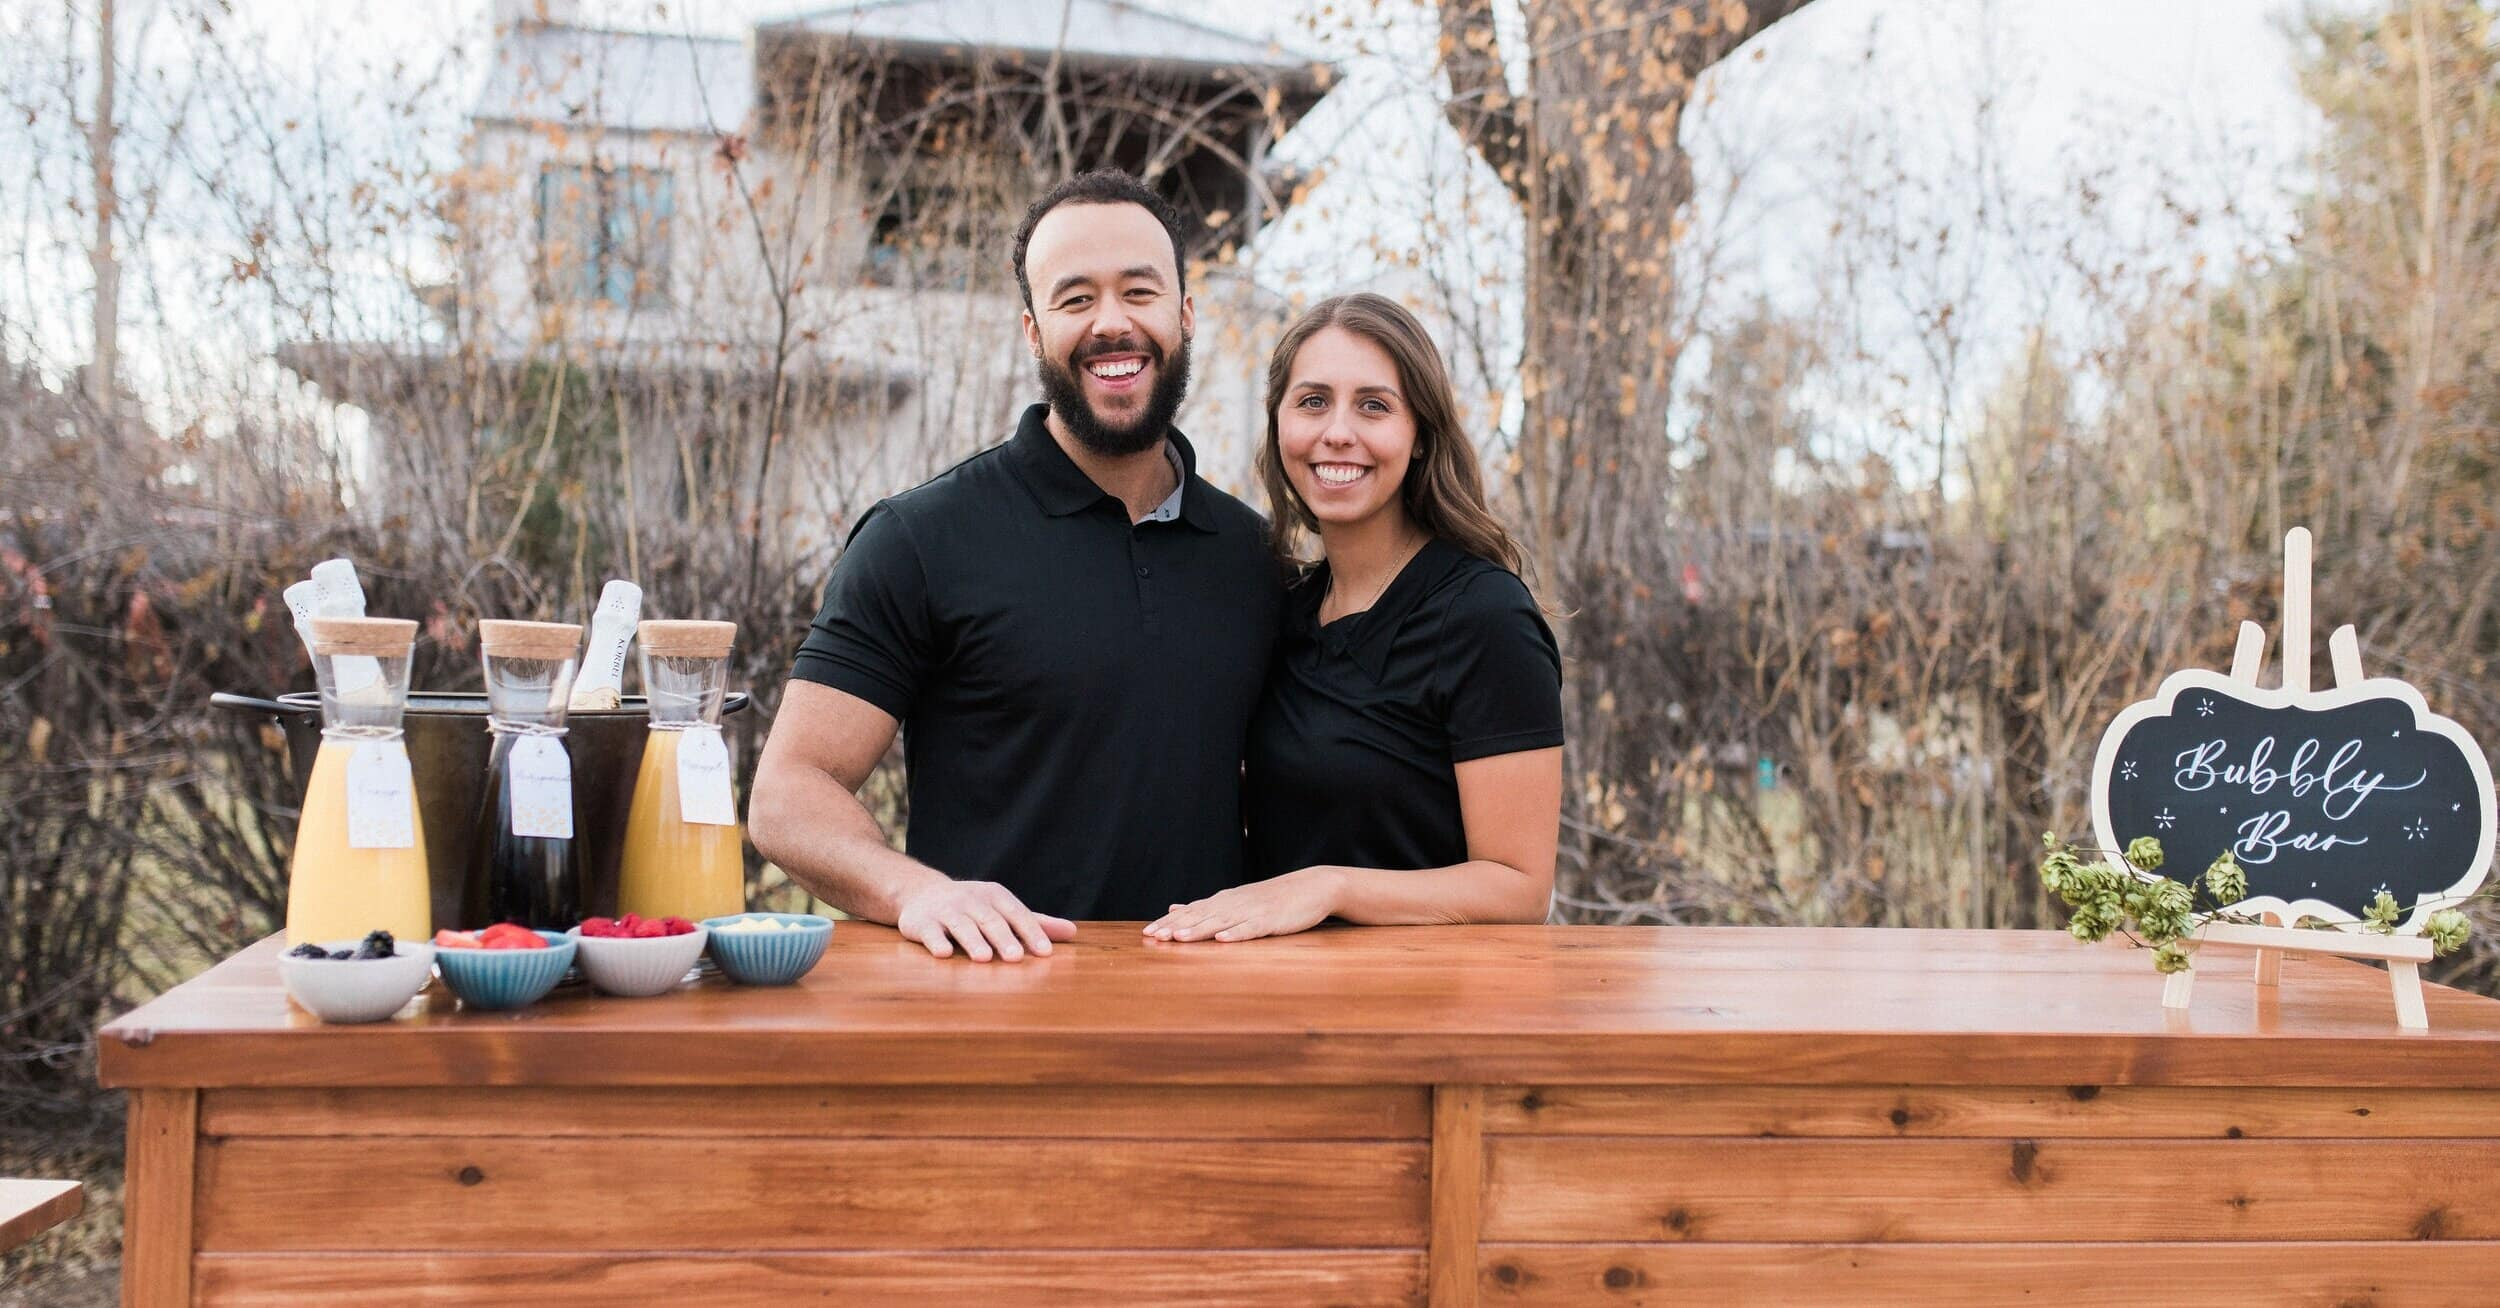 Wandering Wagon Bars co-owners Forest Lloyd and Cassie Lopez mobile bartending